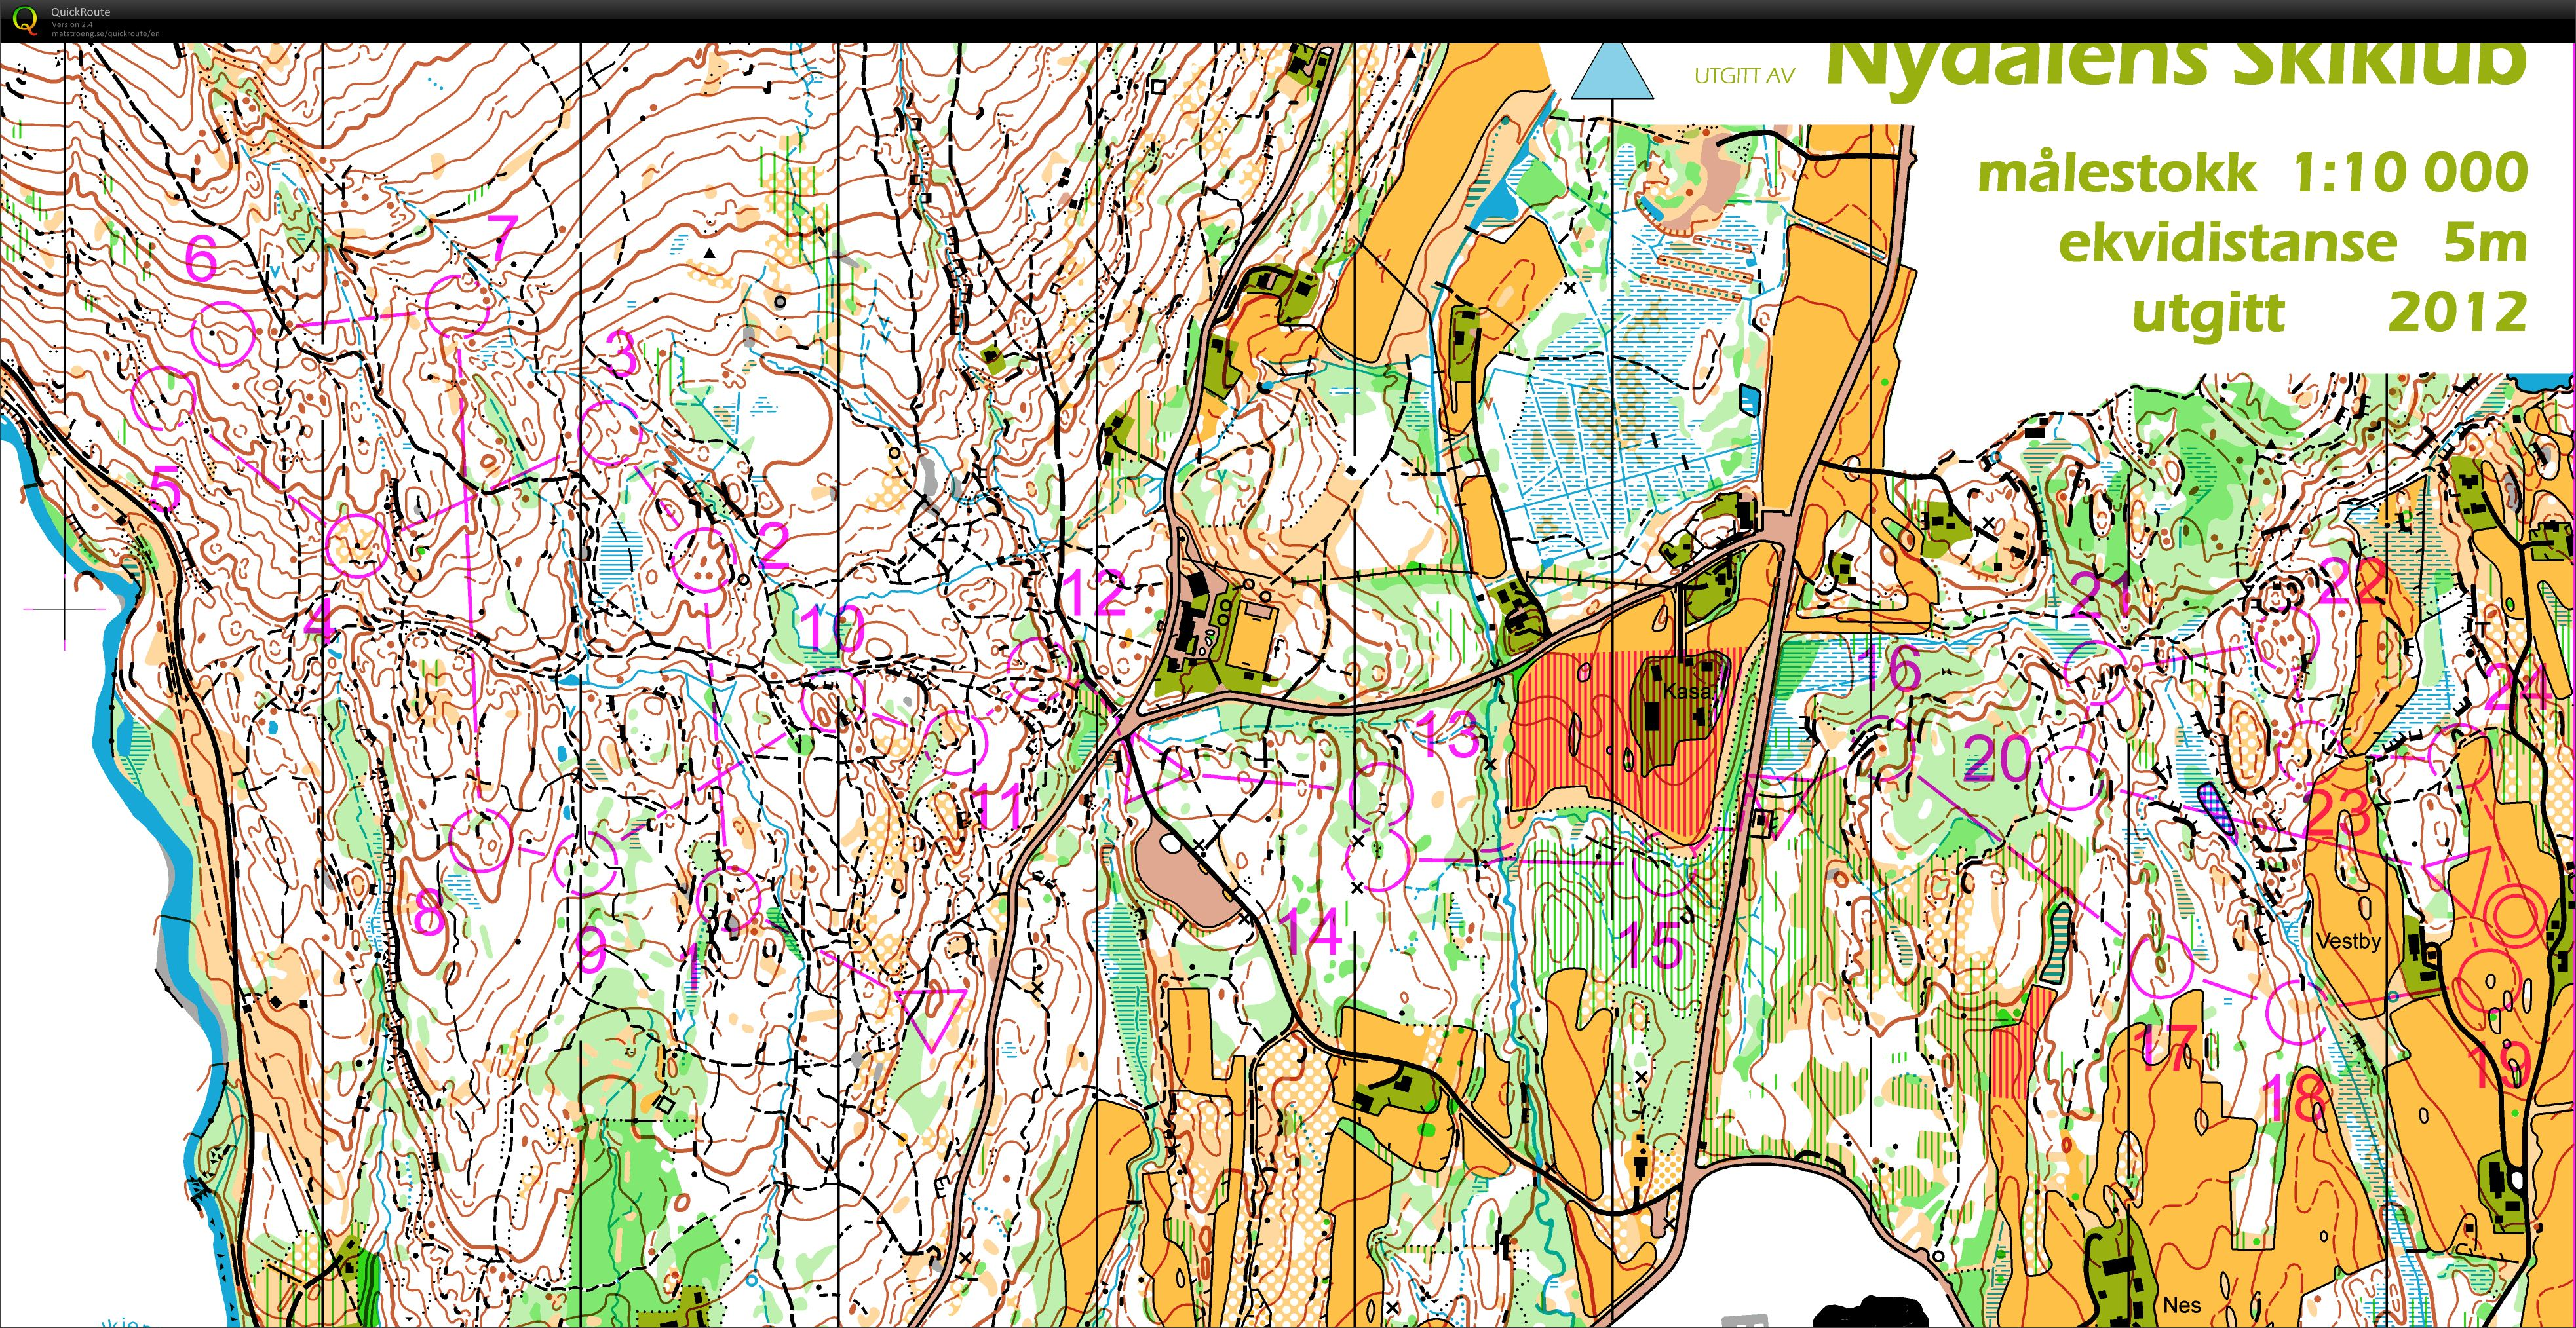 Norwegian Champs Middle M21 Final (first 9 controls) (15/09/2012)